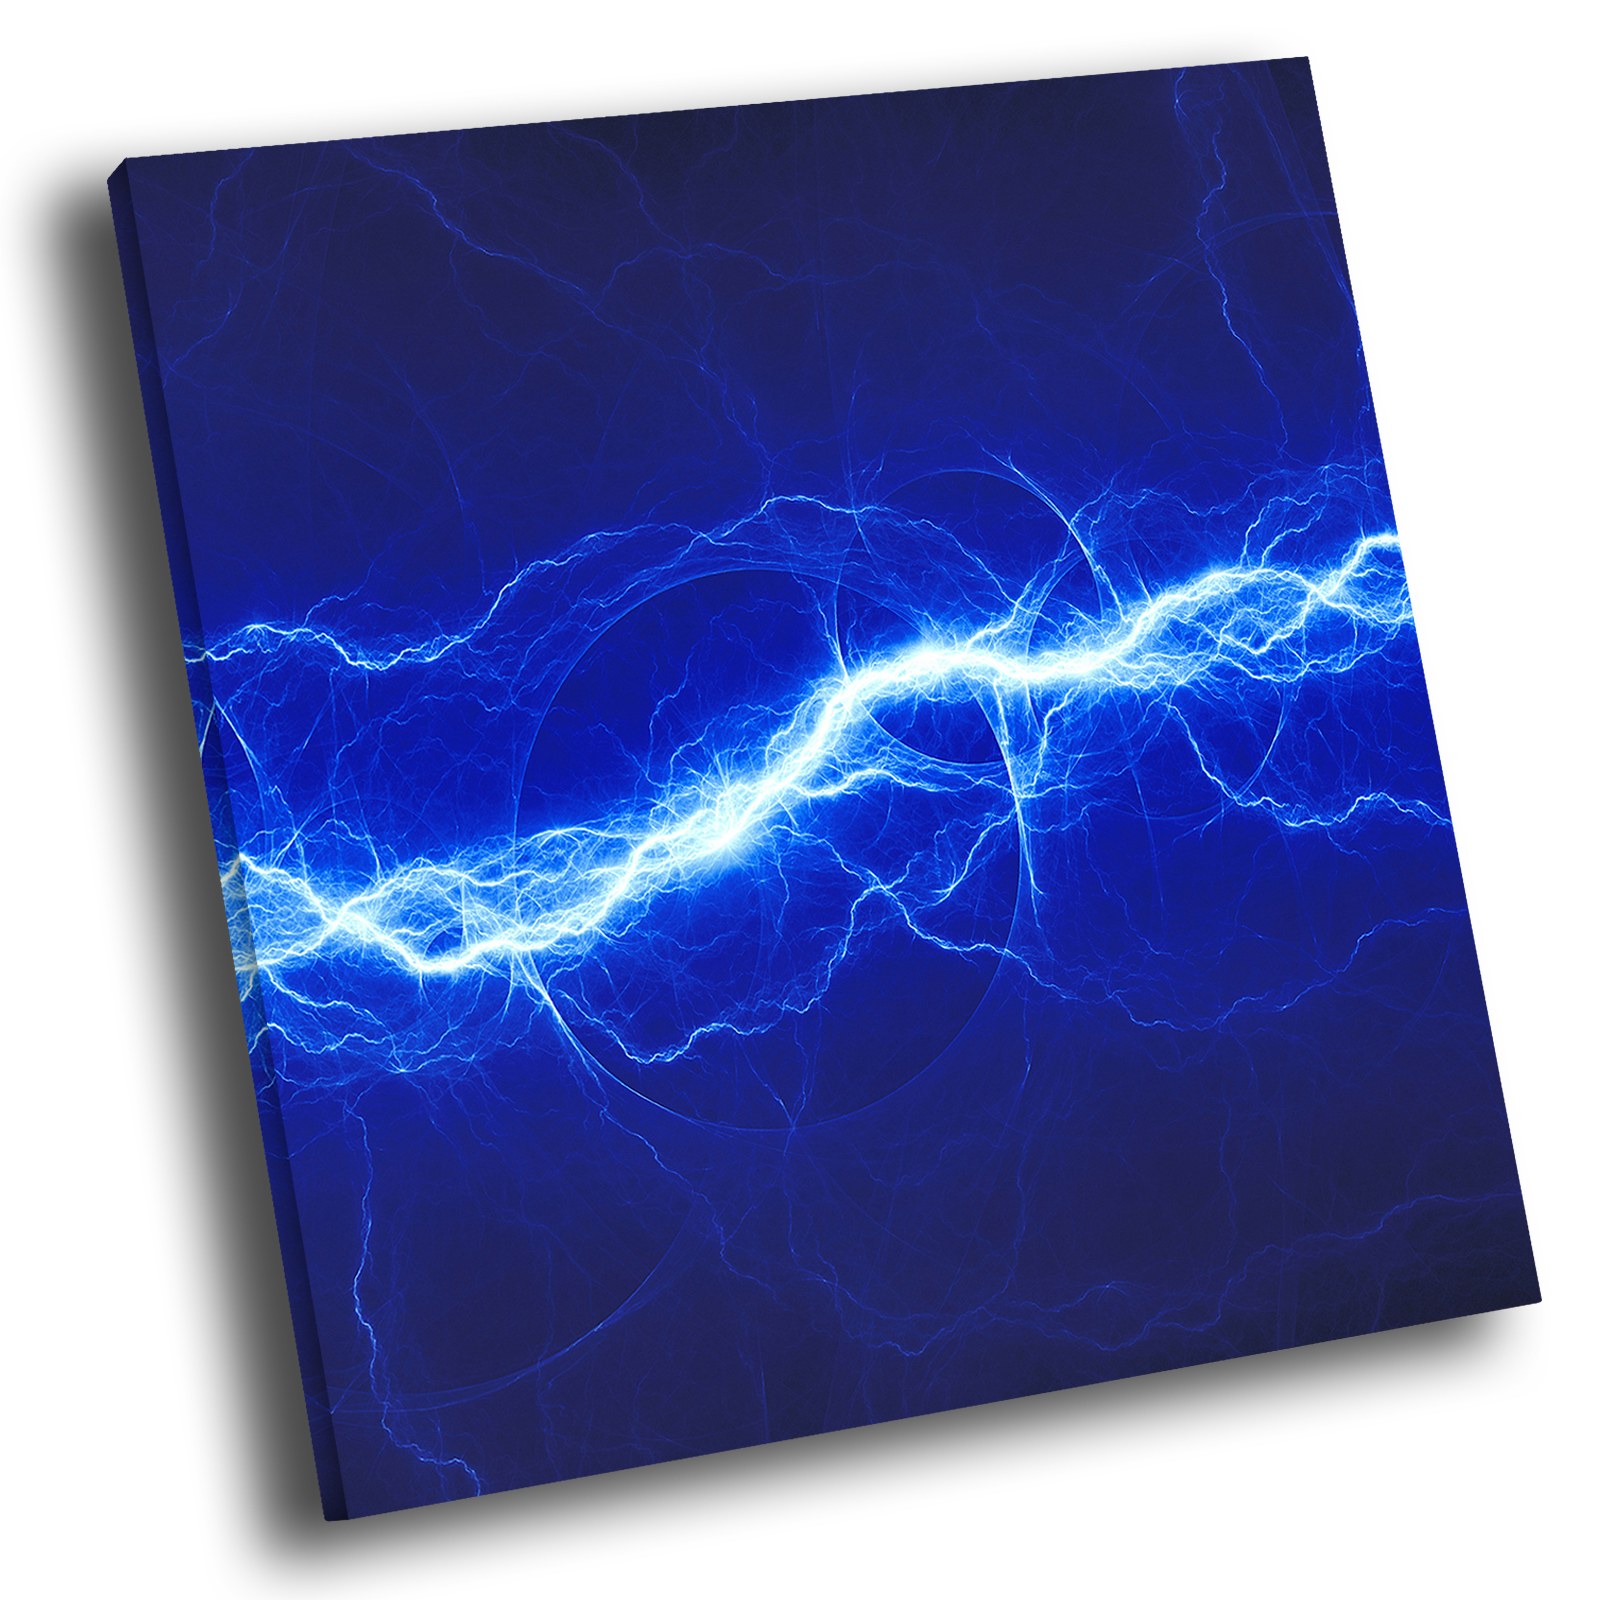 Details About Blue Lightning Cool Abstract Square Canvas Picture Modern Wall Art Print